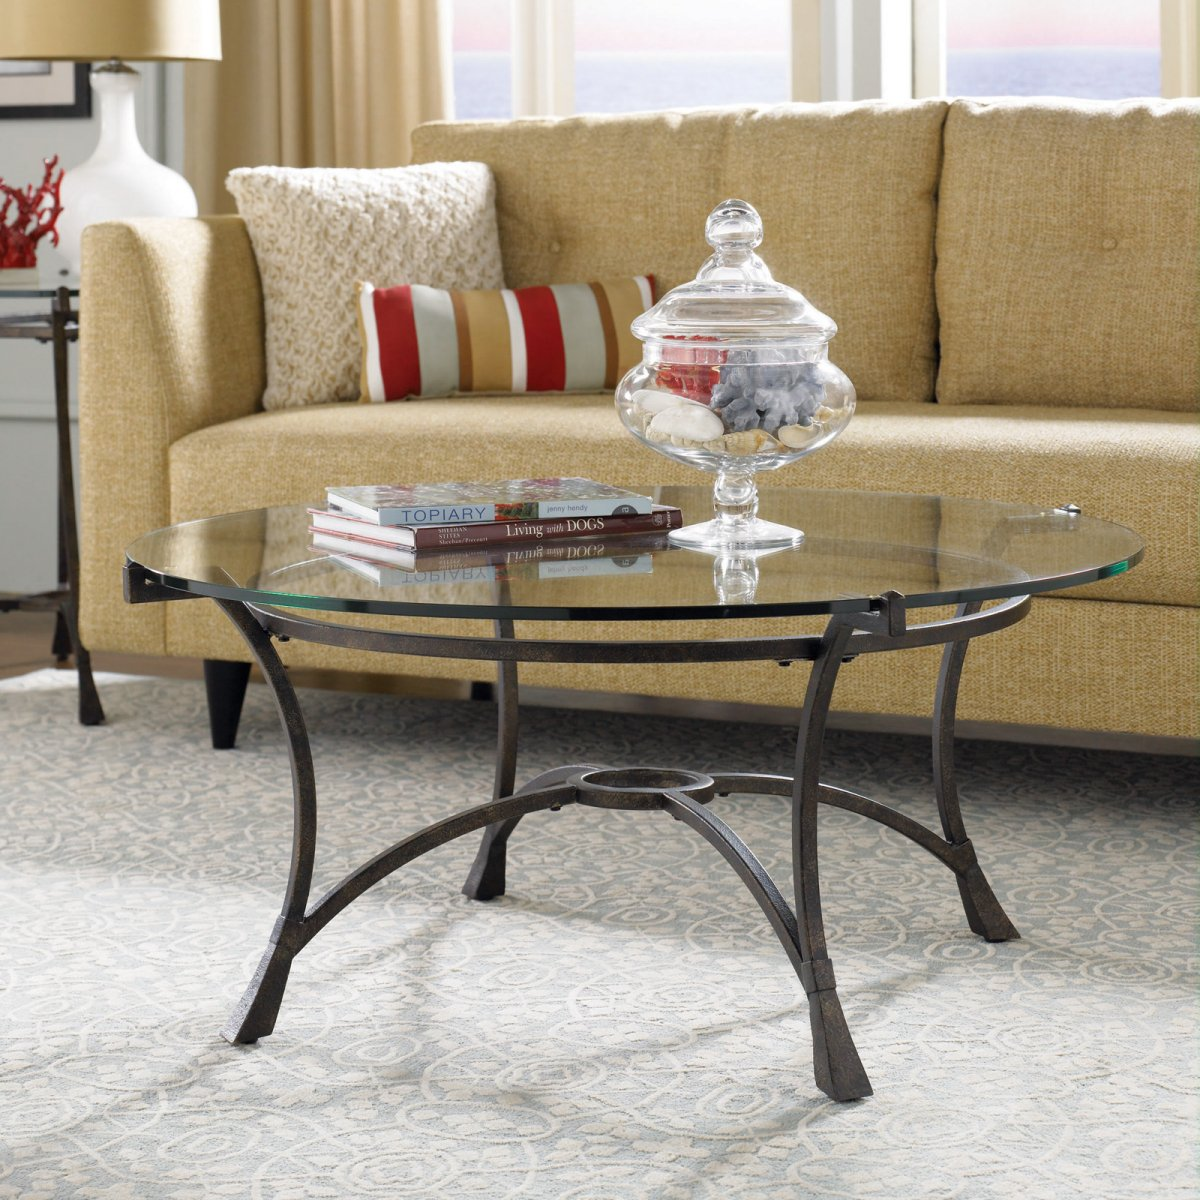 A-glass-coffee-table-with-metal-legs-is-a-daring-piece-that-feels-both-elegant-and-industrial